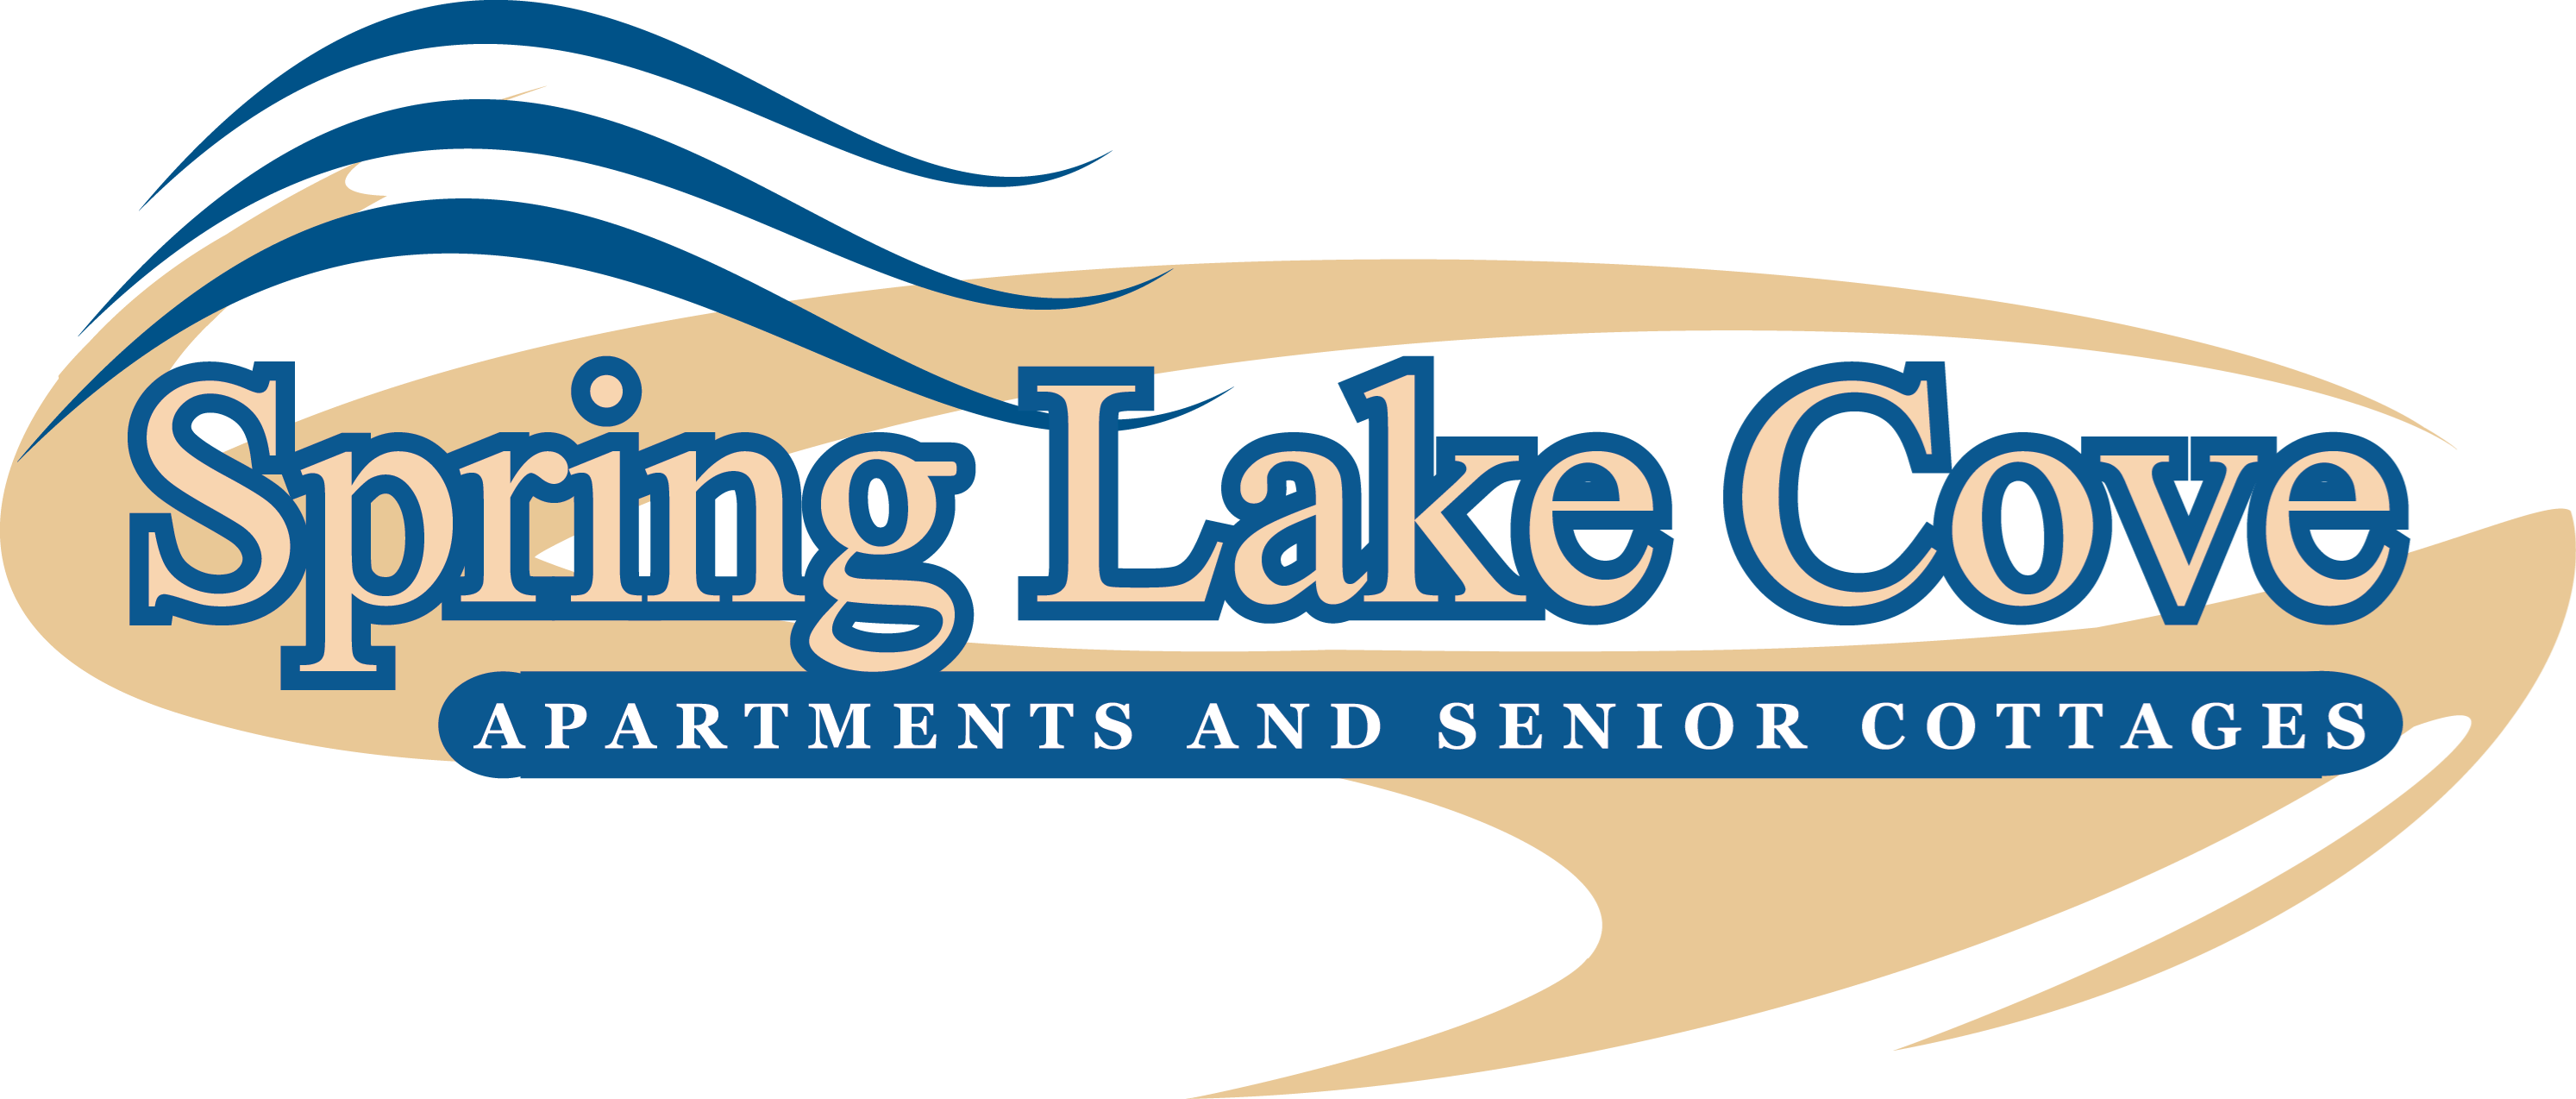 Spring Lake Cove Apartments for rent in Fruitland Park, FL. Make this community your new home or visit other Concord Rents communities at ConcordRents.com. Logo